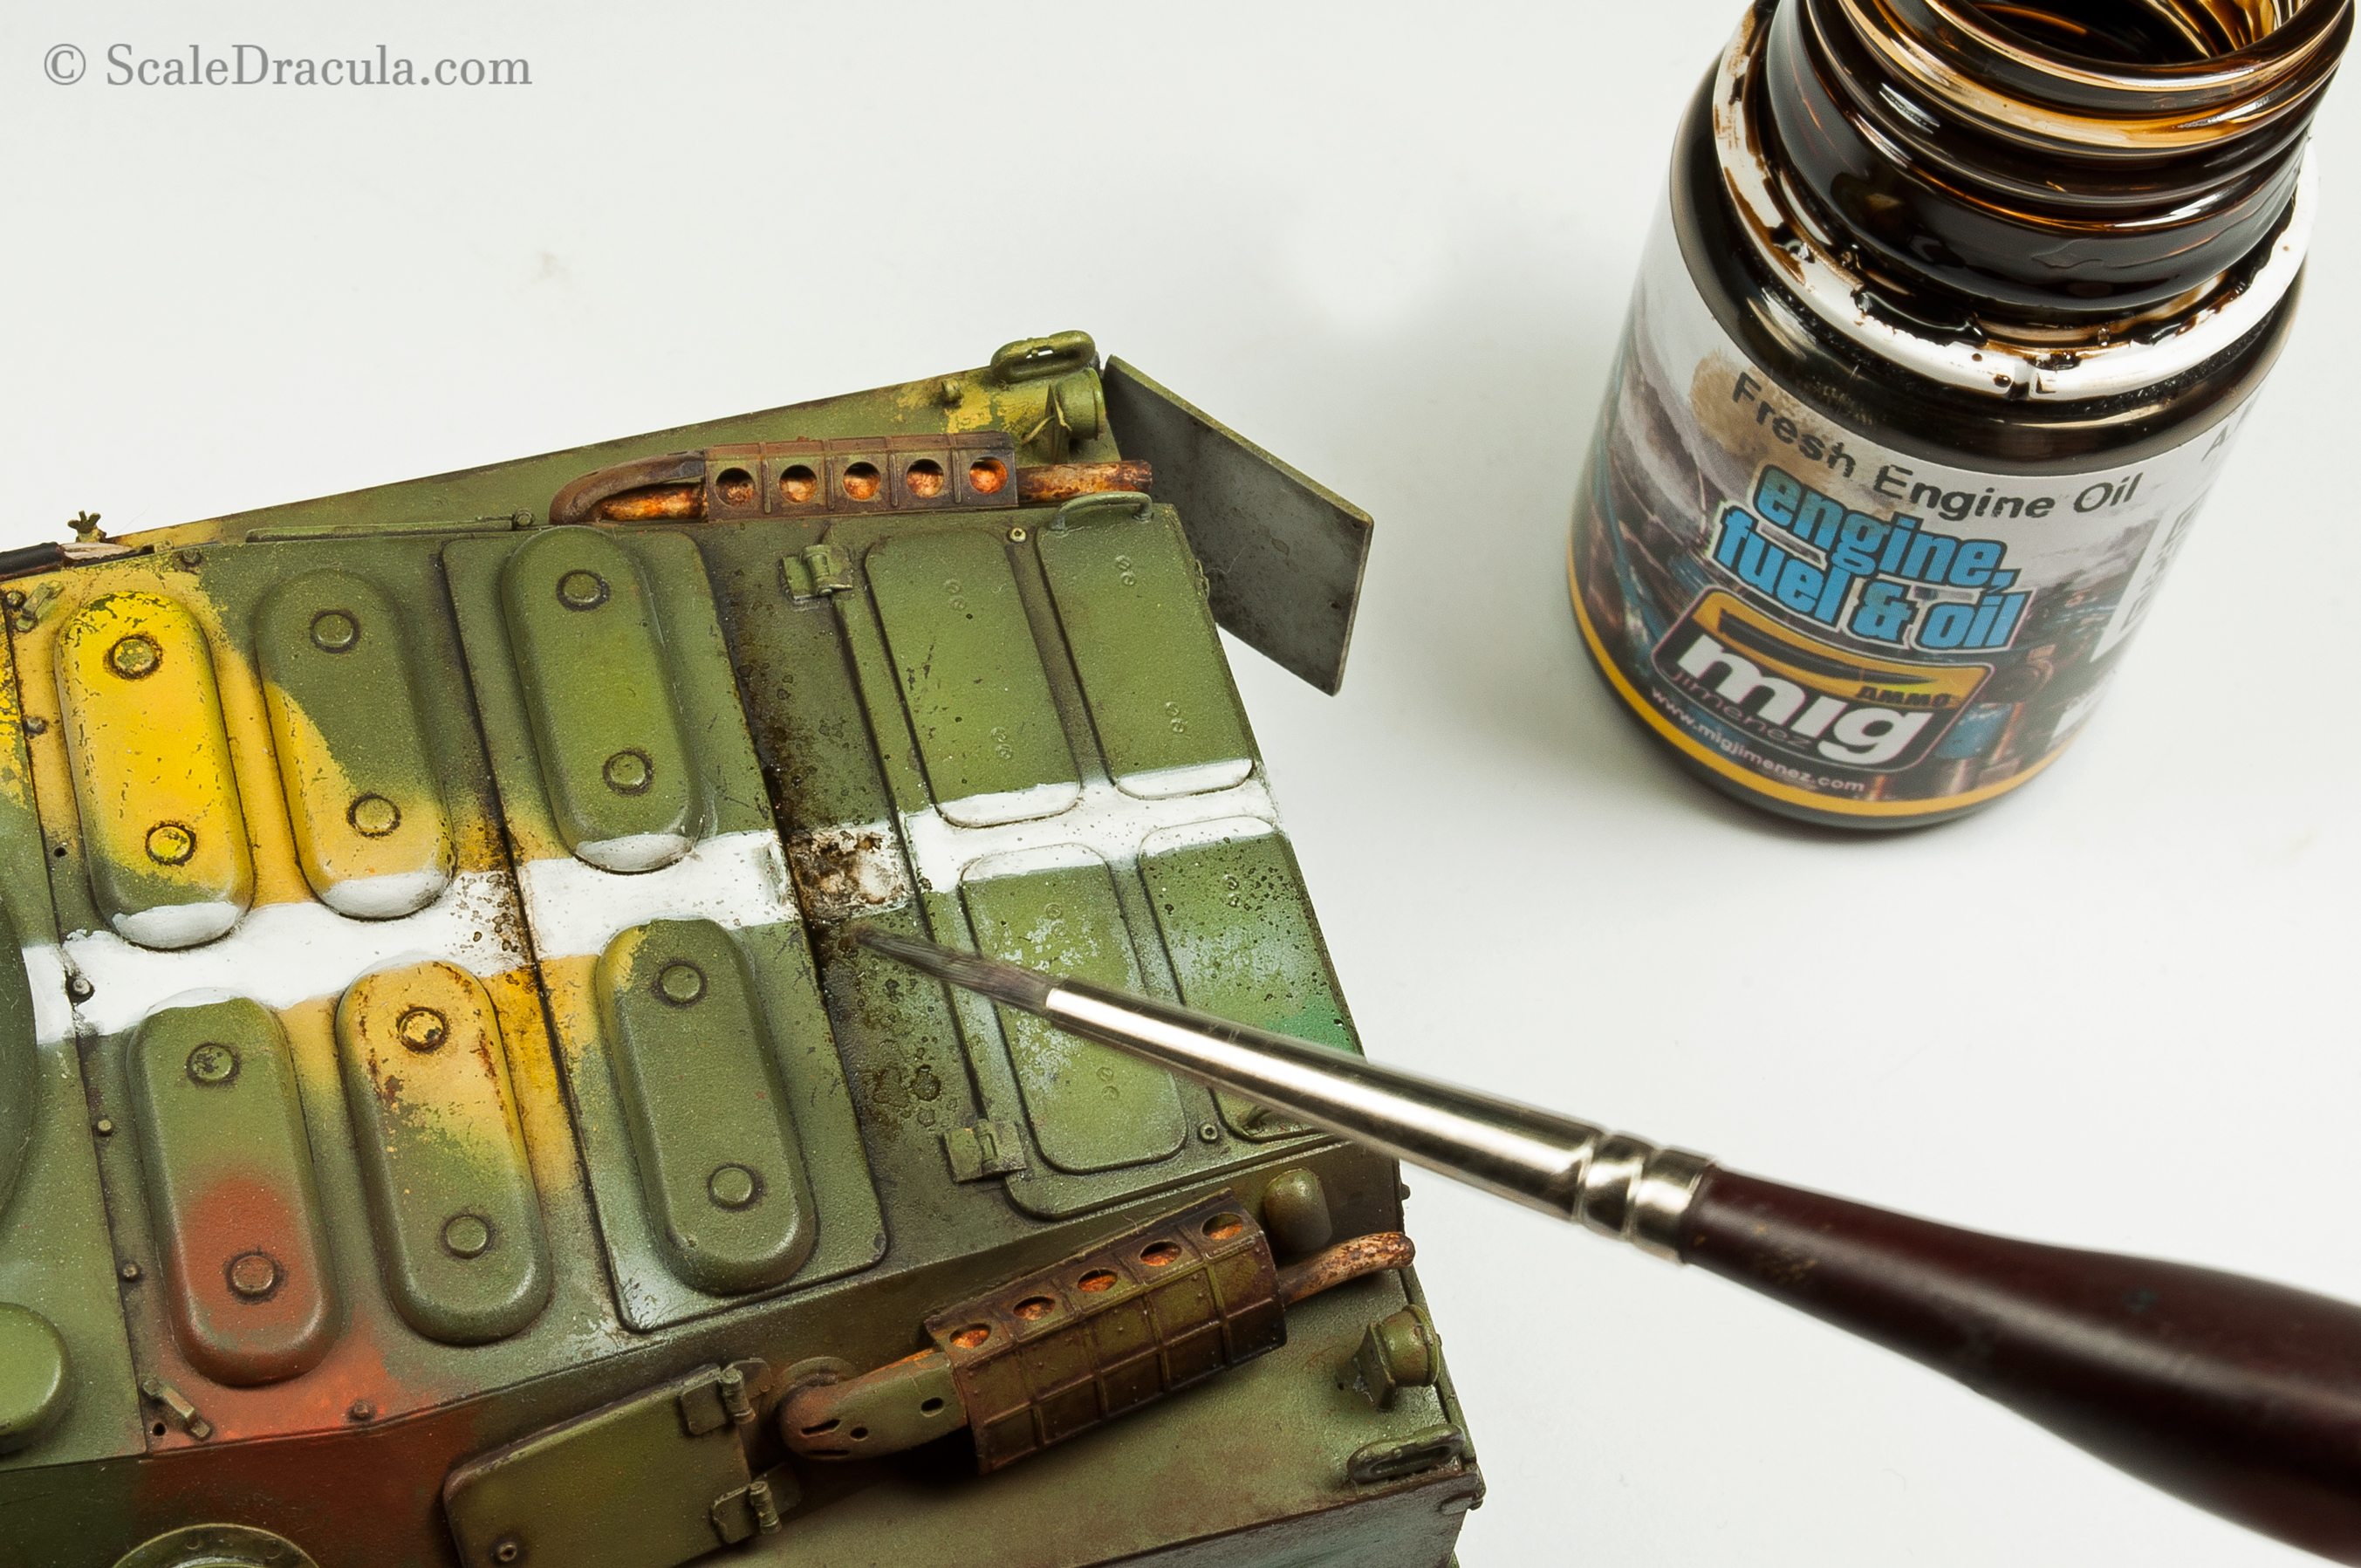 Greasy oil effects with Ammo Fresh Engine Oil, BRDM-2 by Trumpeter